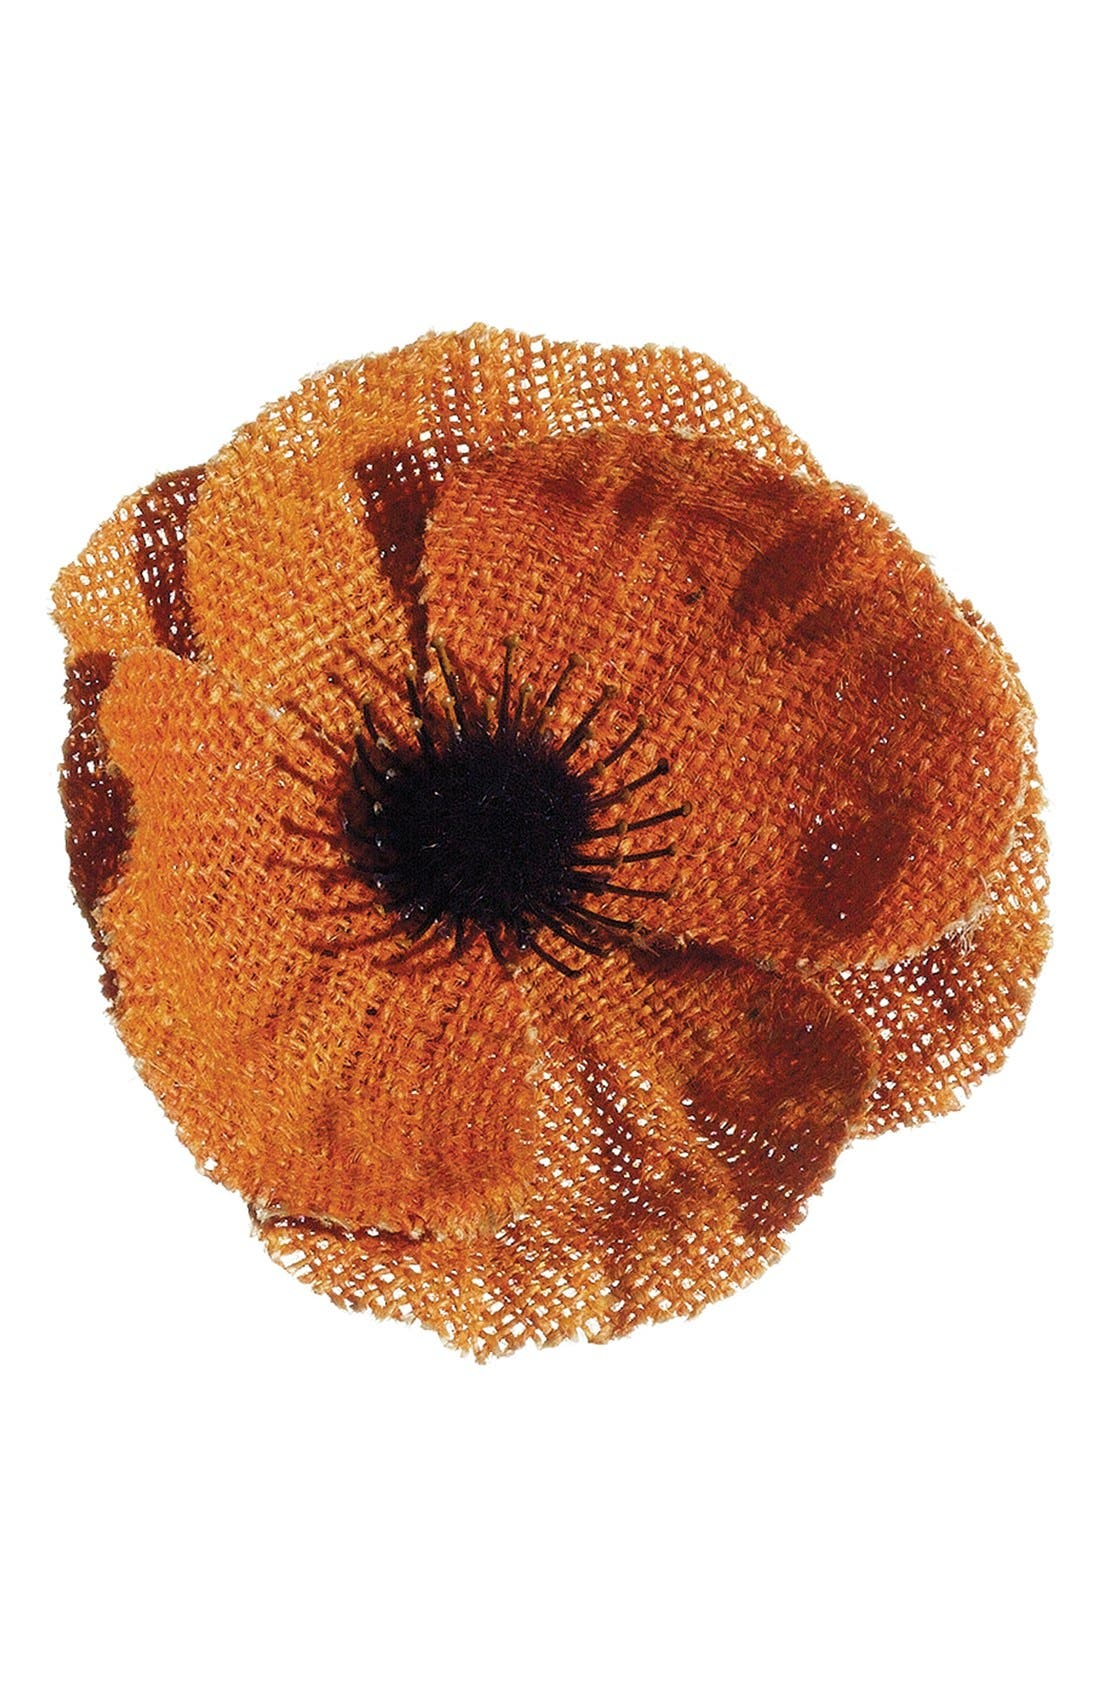 Alternate Image 1 Selected - ALLSTATE 'Poppy' Burlap Napkin Ring